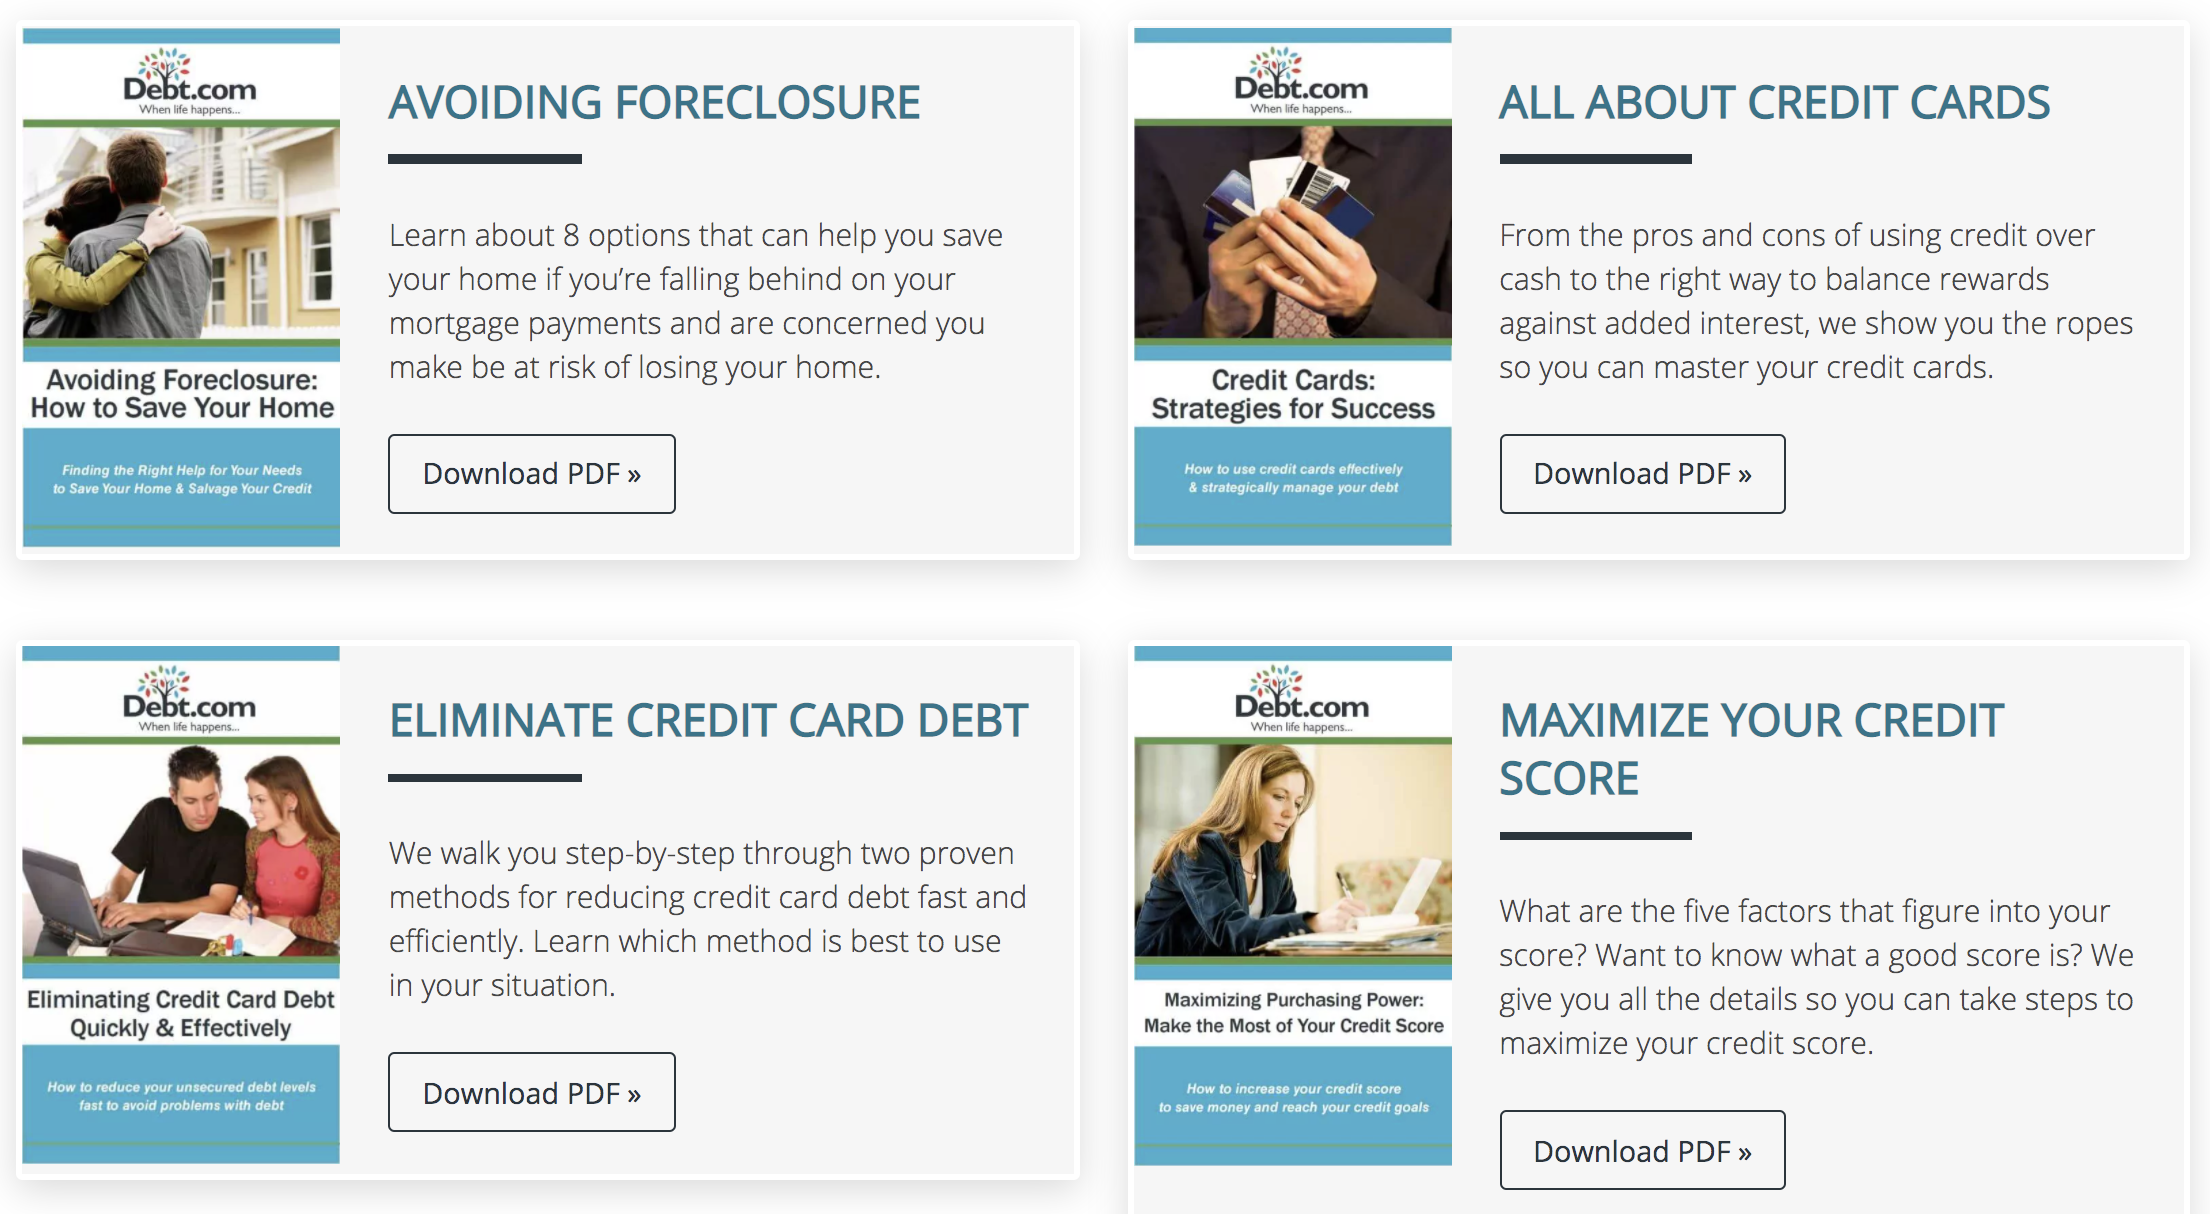 Booklets on foreclosure, credit scores, credit card debt, and credit cards